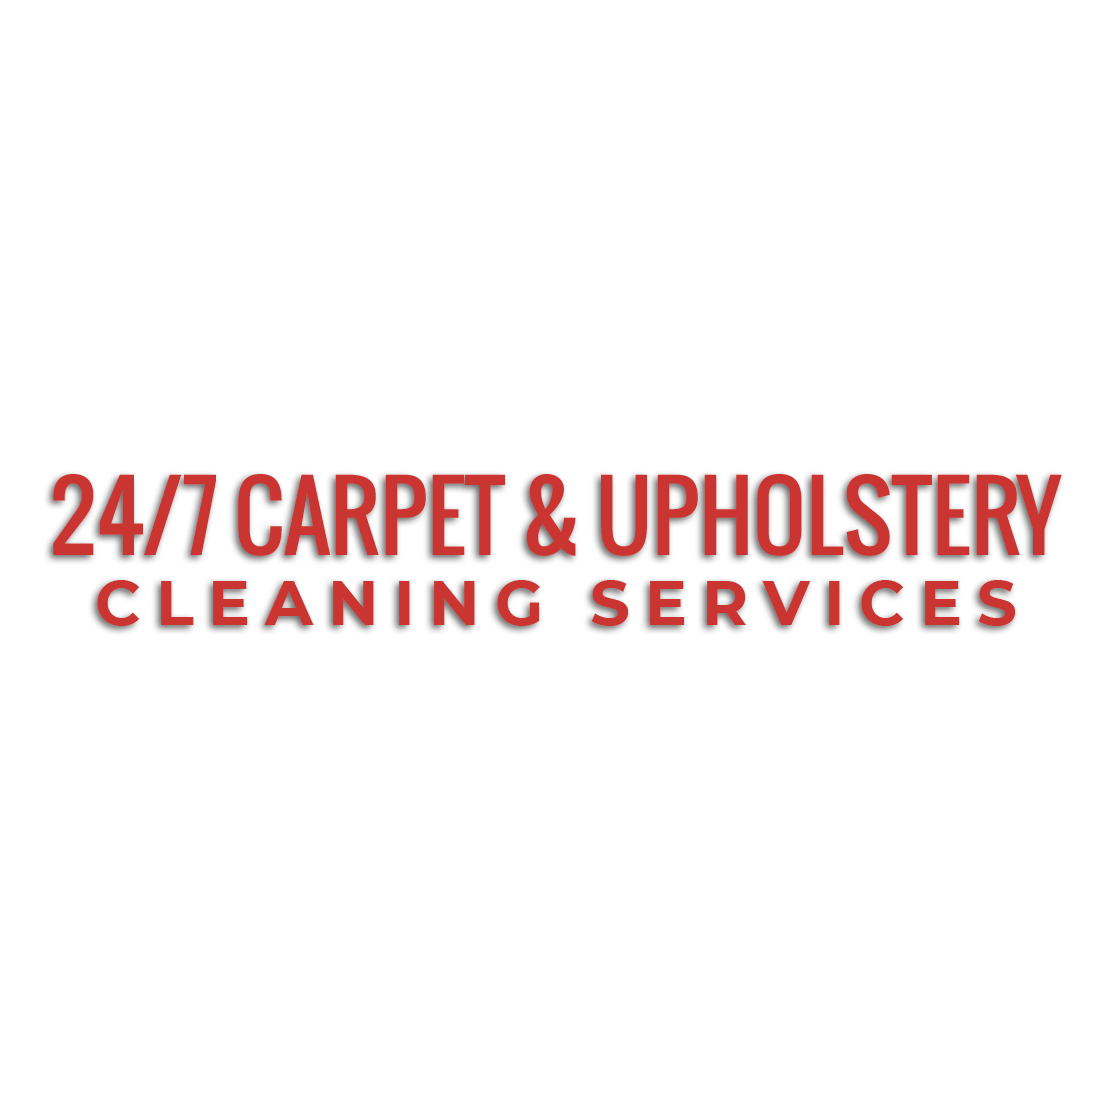 24/7 Carpet & Upholstery Cleaning Services - St. Louis, MO 63138 - (314)761-5524 | ShowMeLocal.com